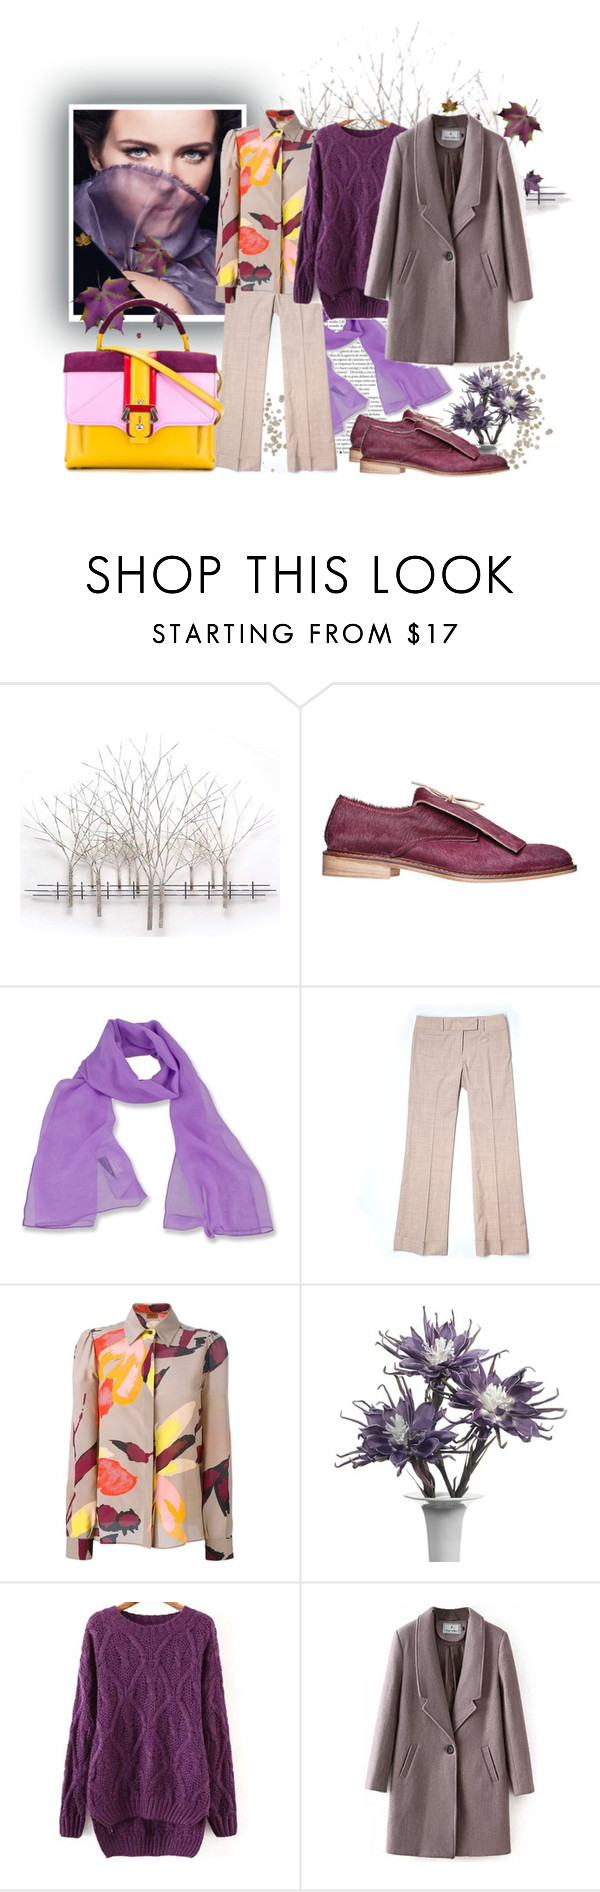 """Purple  Sweater"" by tasha1973 ❤ liked on Polyvore featuring Home Decorators Collection, Anouki, Chanel, White Sierra, BCBGMAXAZRIA, Missoni and Paula Cademartori"